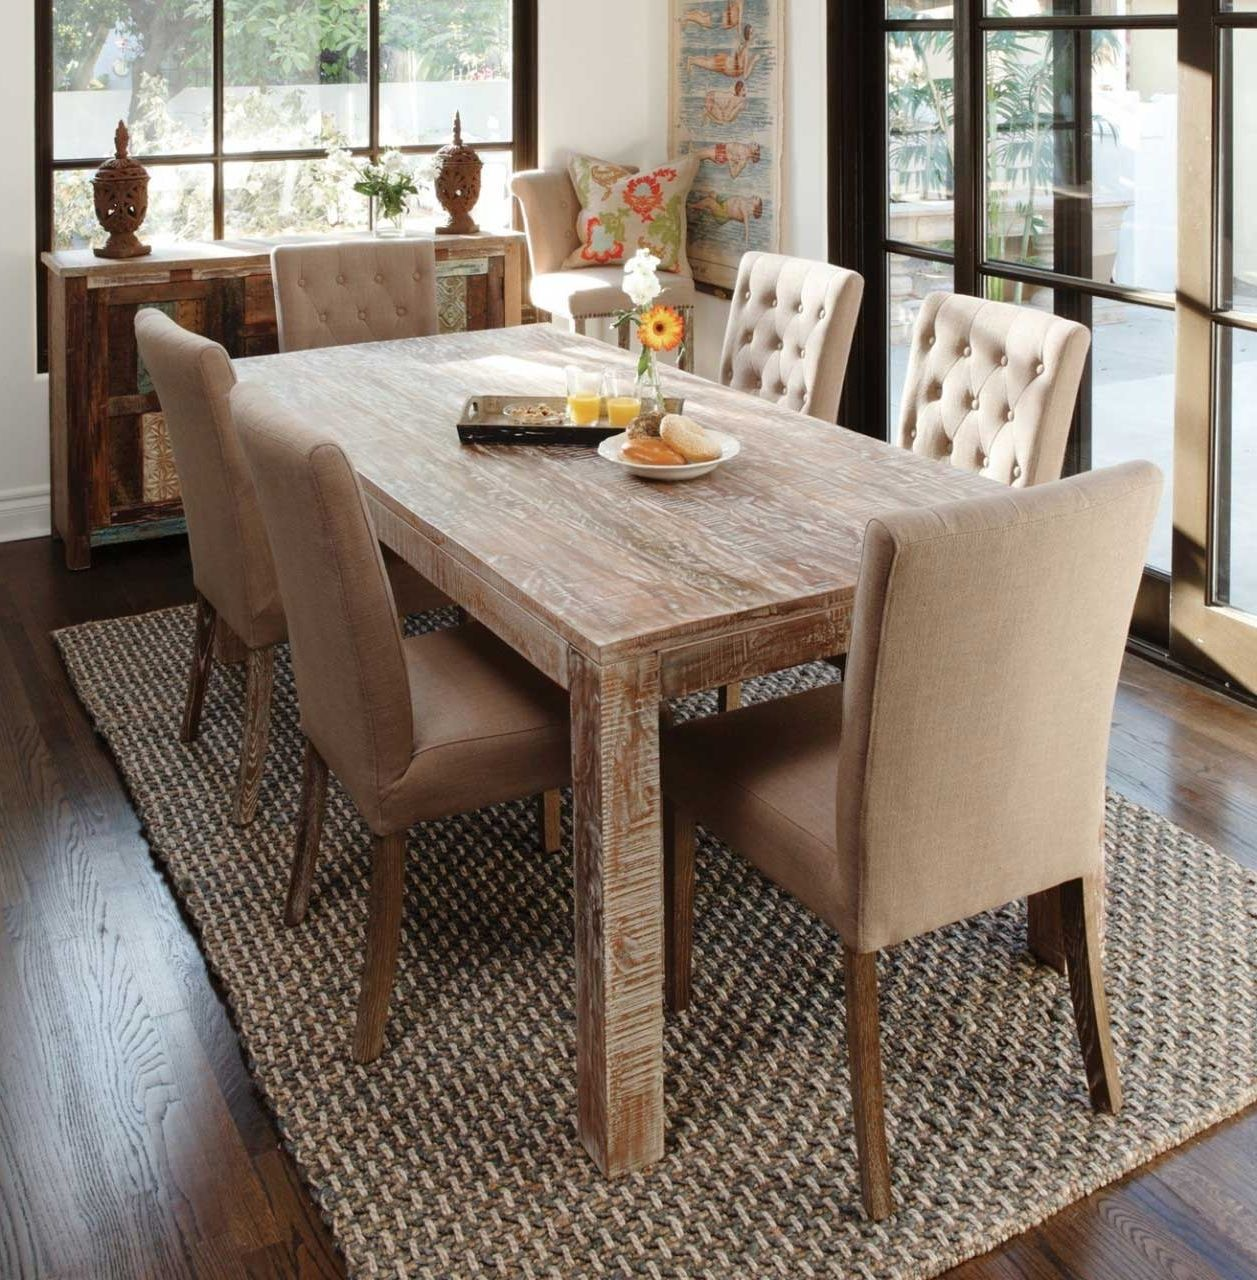 Types Of Rustic Kitchen Tables And Chairs Full Size Of Dining Room